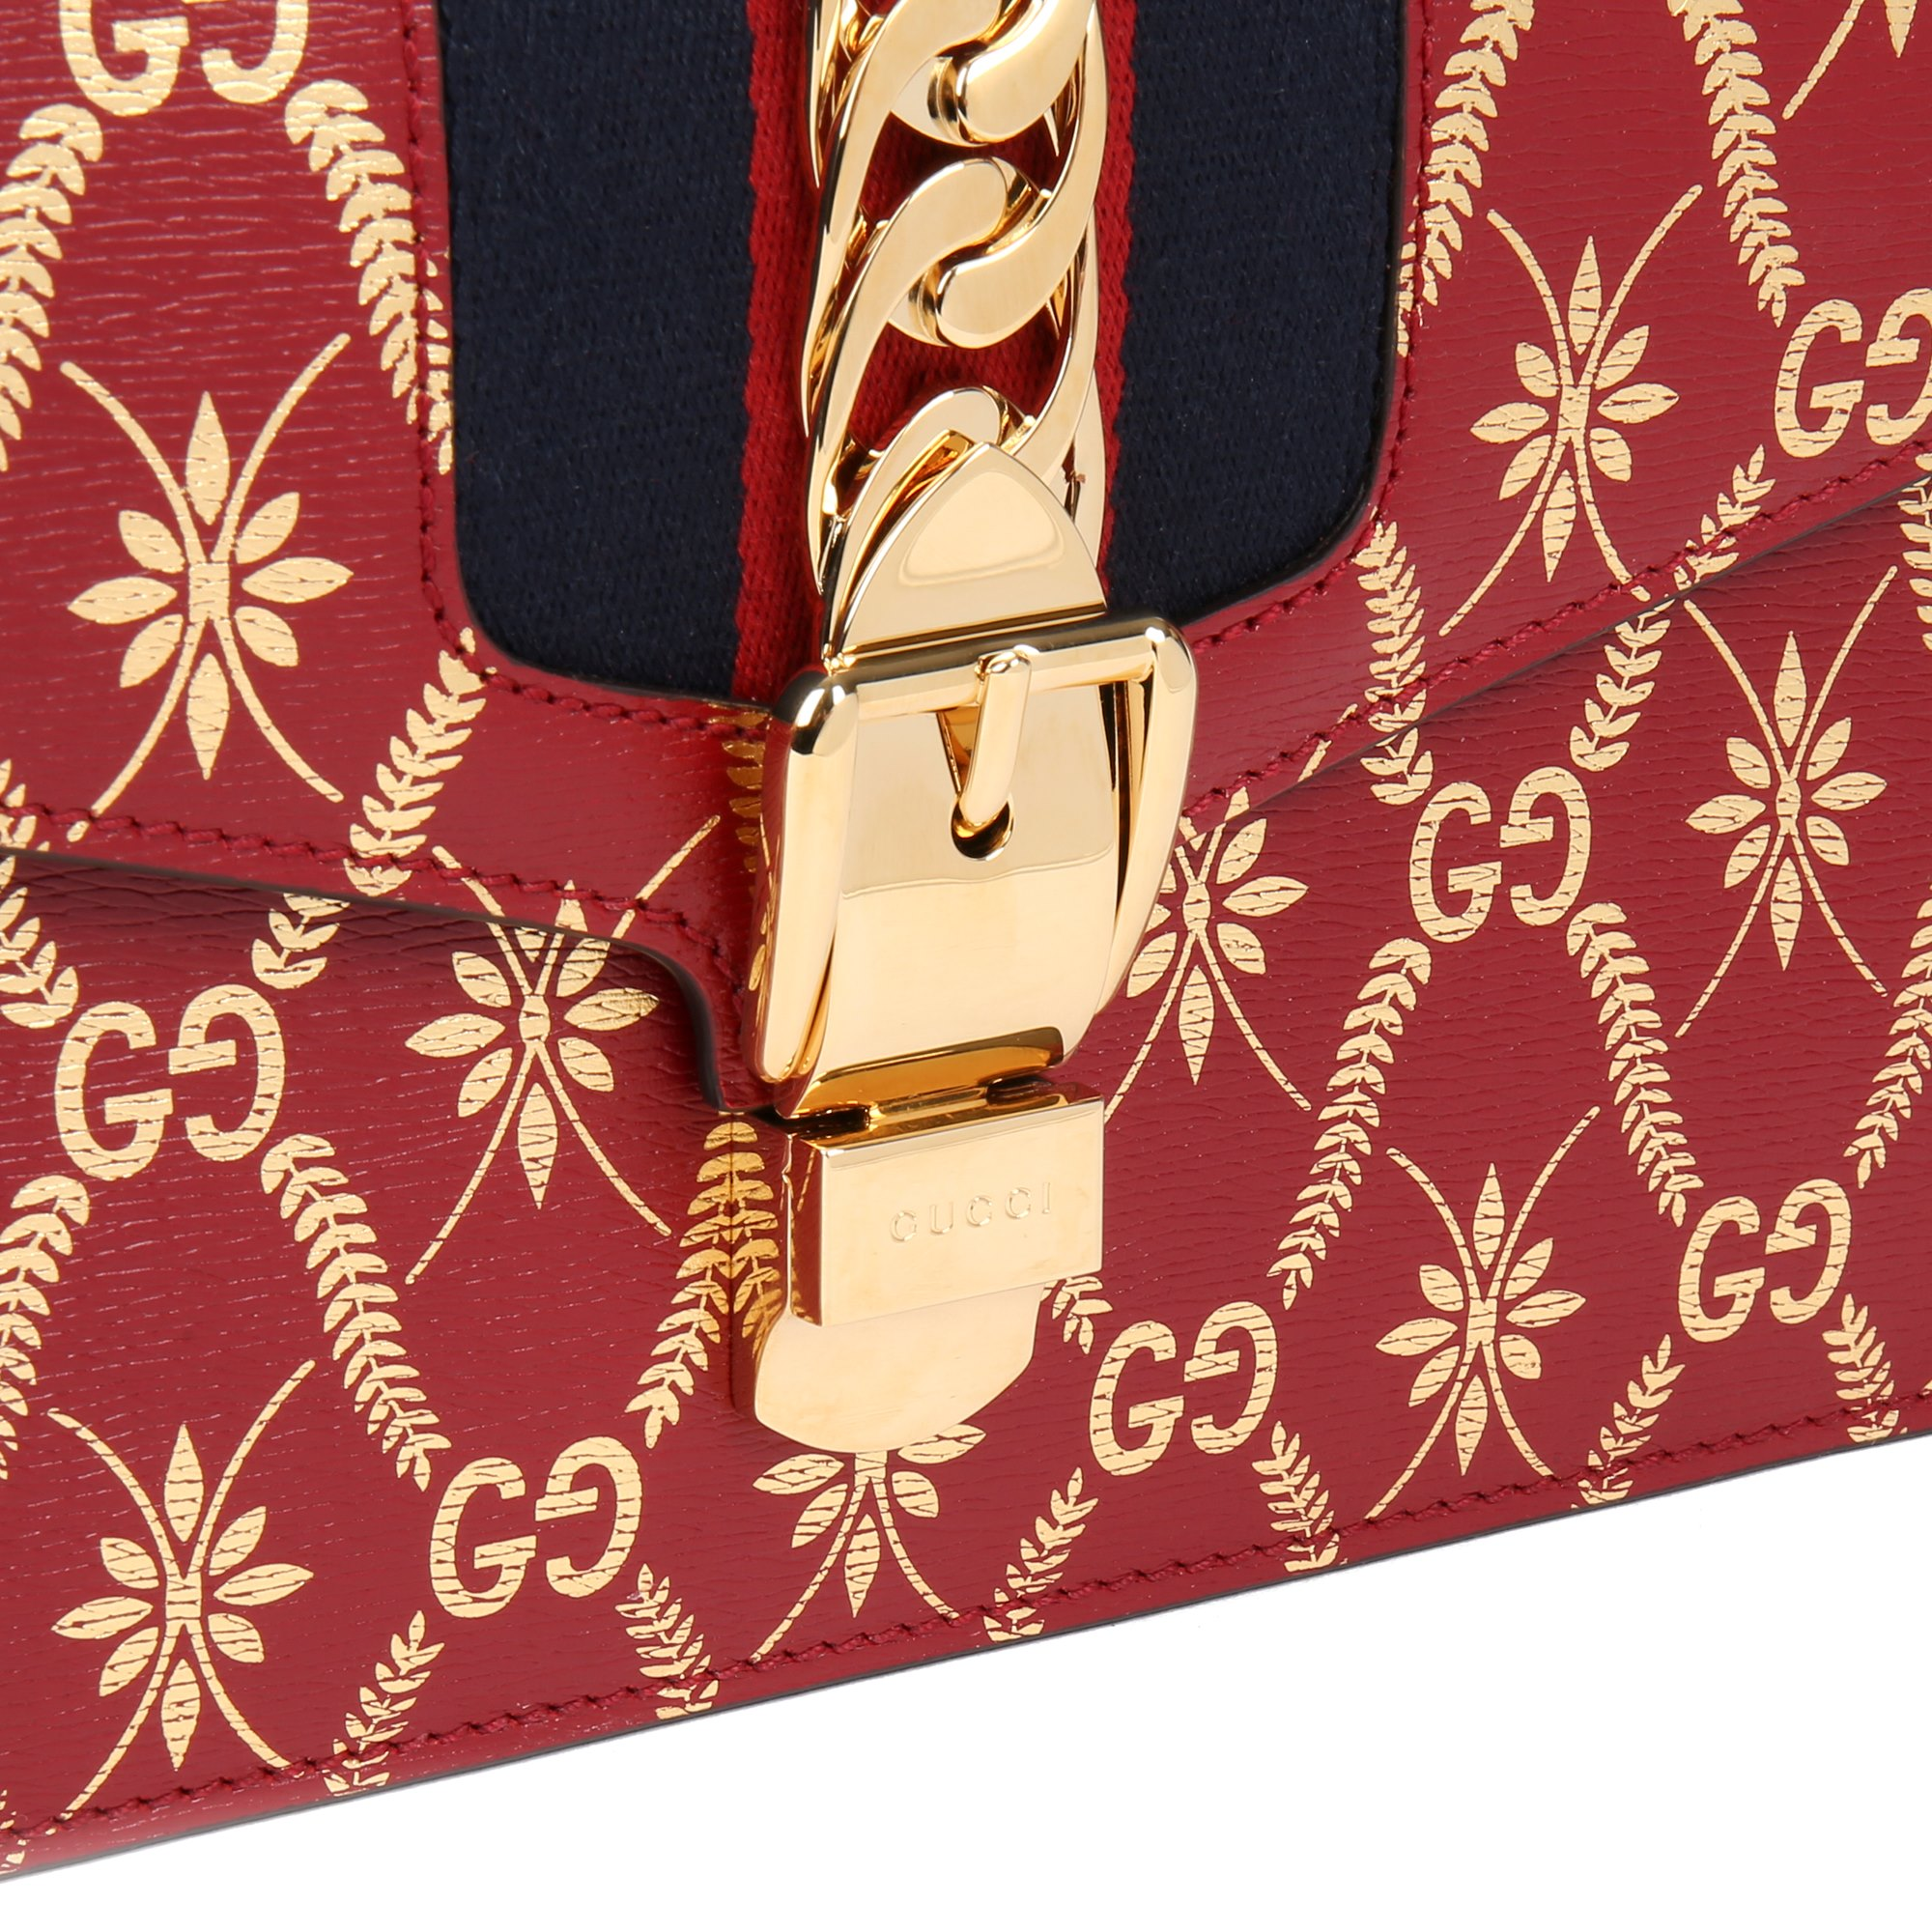 Gucci Red & Gold Calfskin Leather Top Handle Small Sylvie